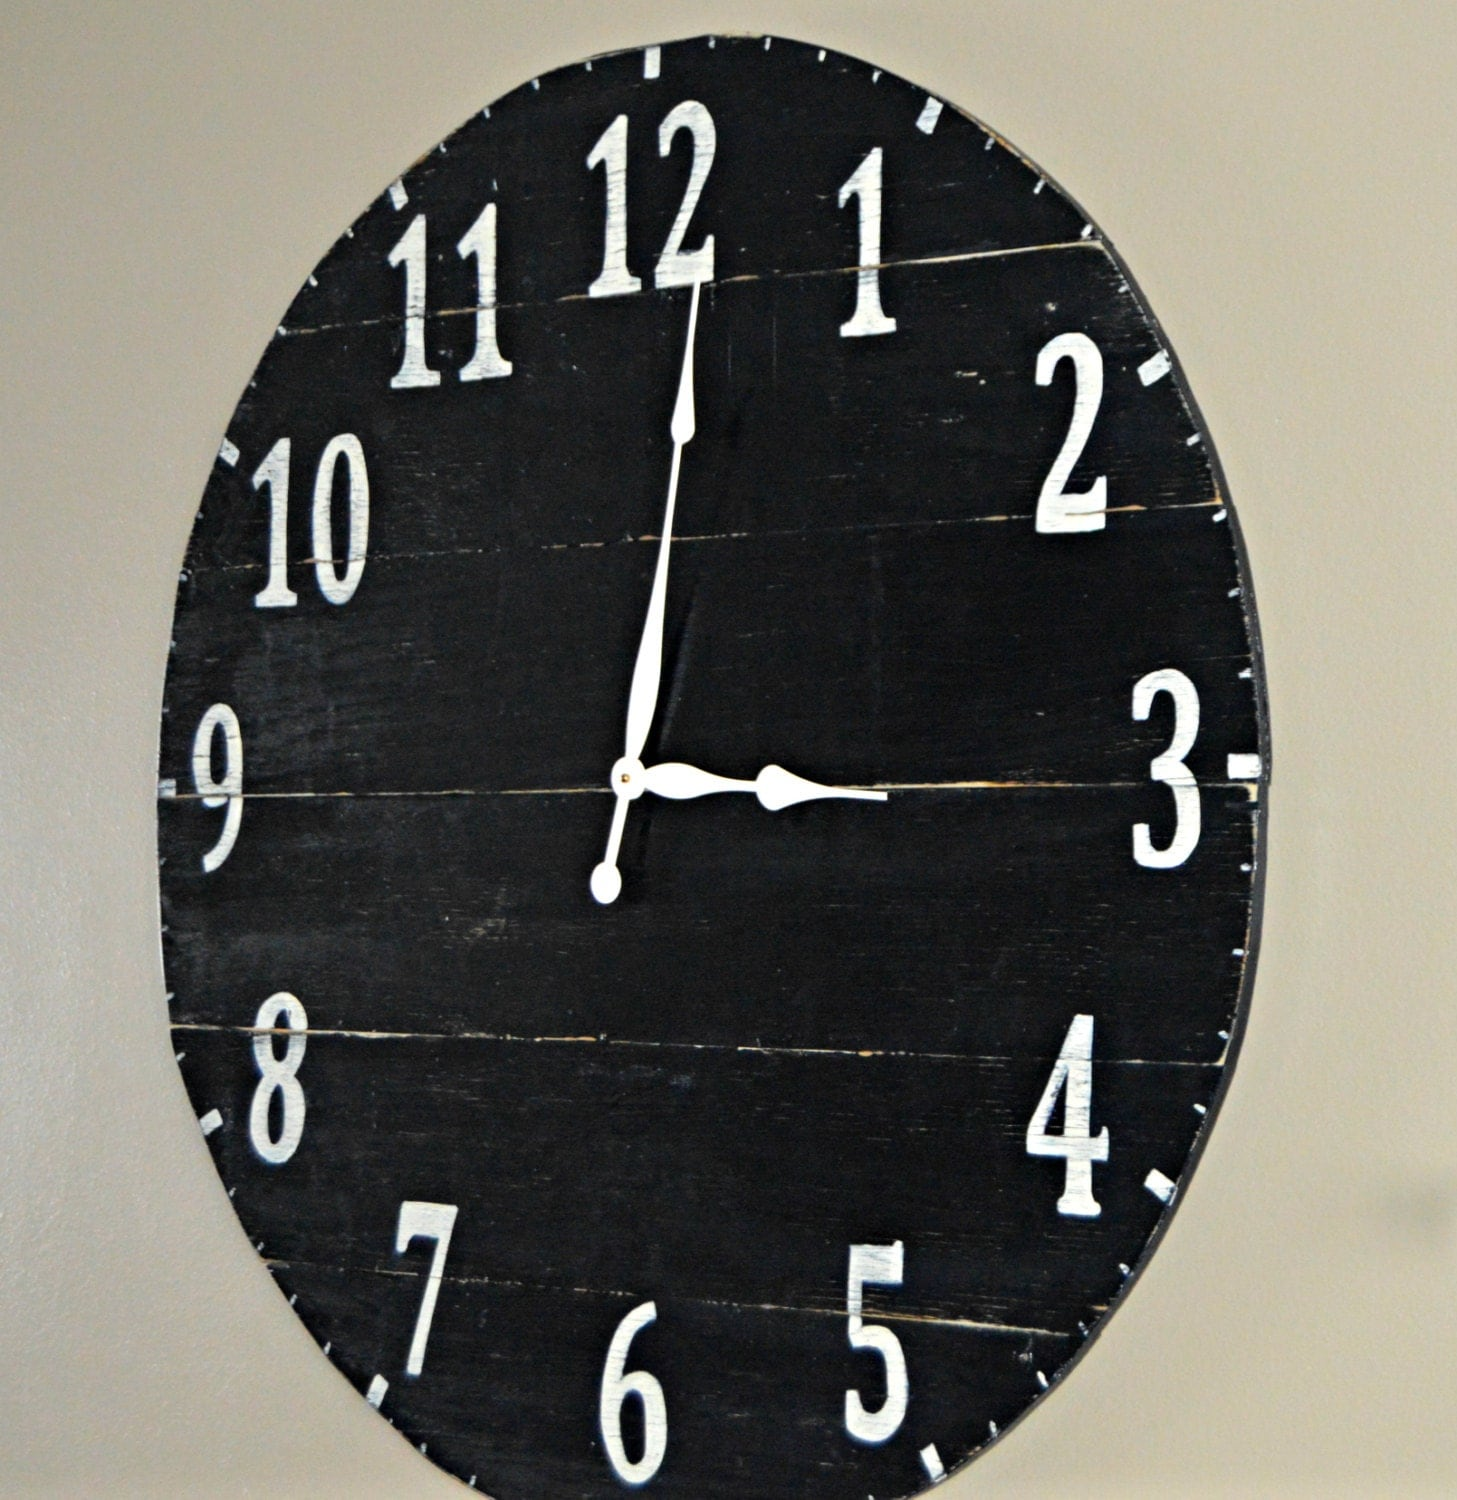 36 Large Oversized Distressed Rustic Wood Wall Clock